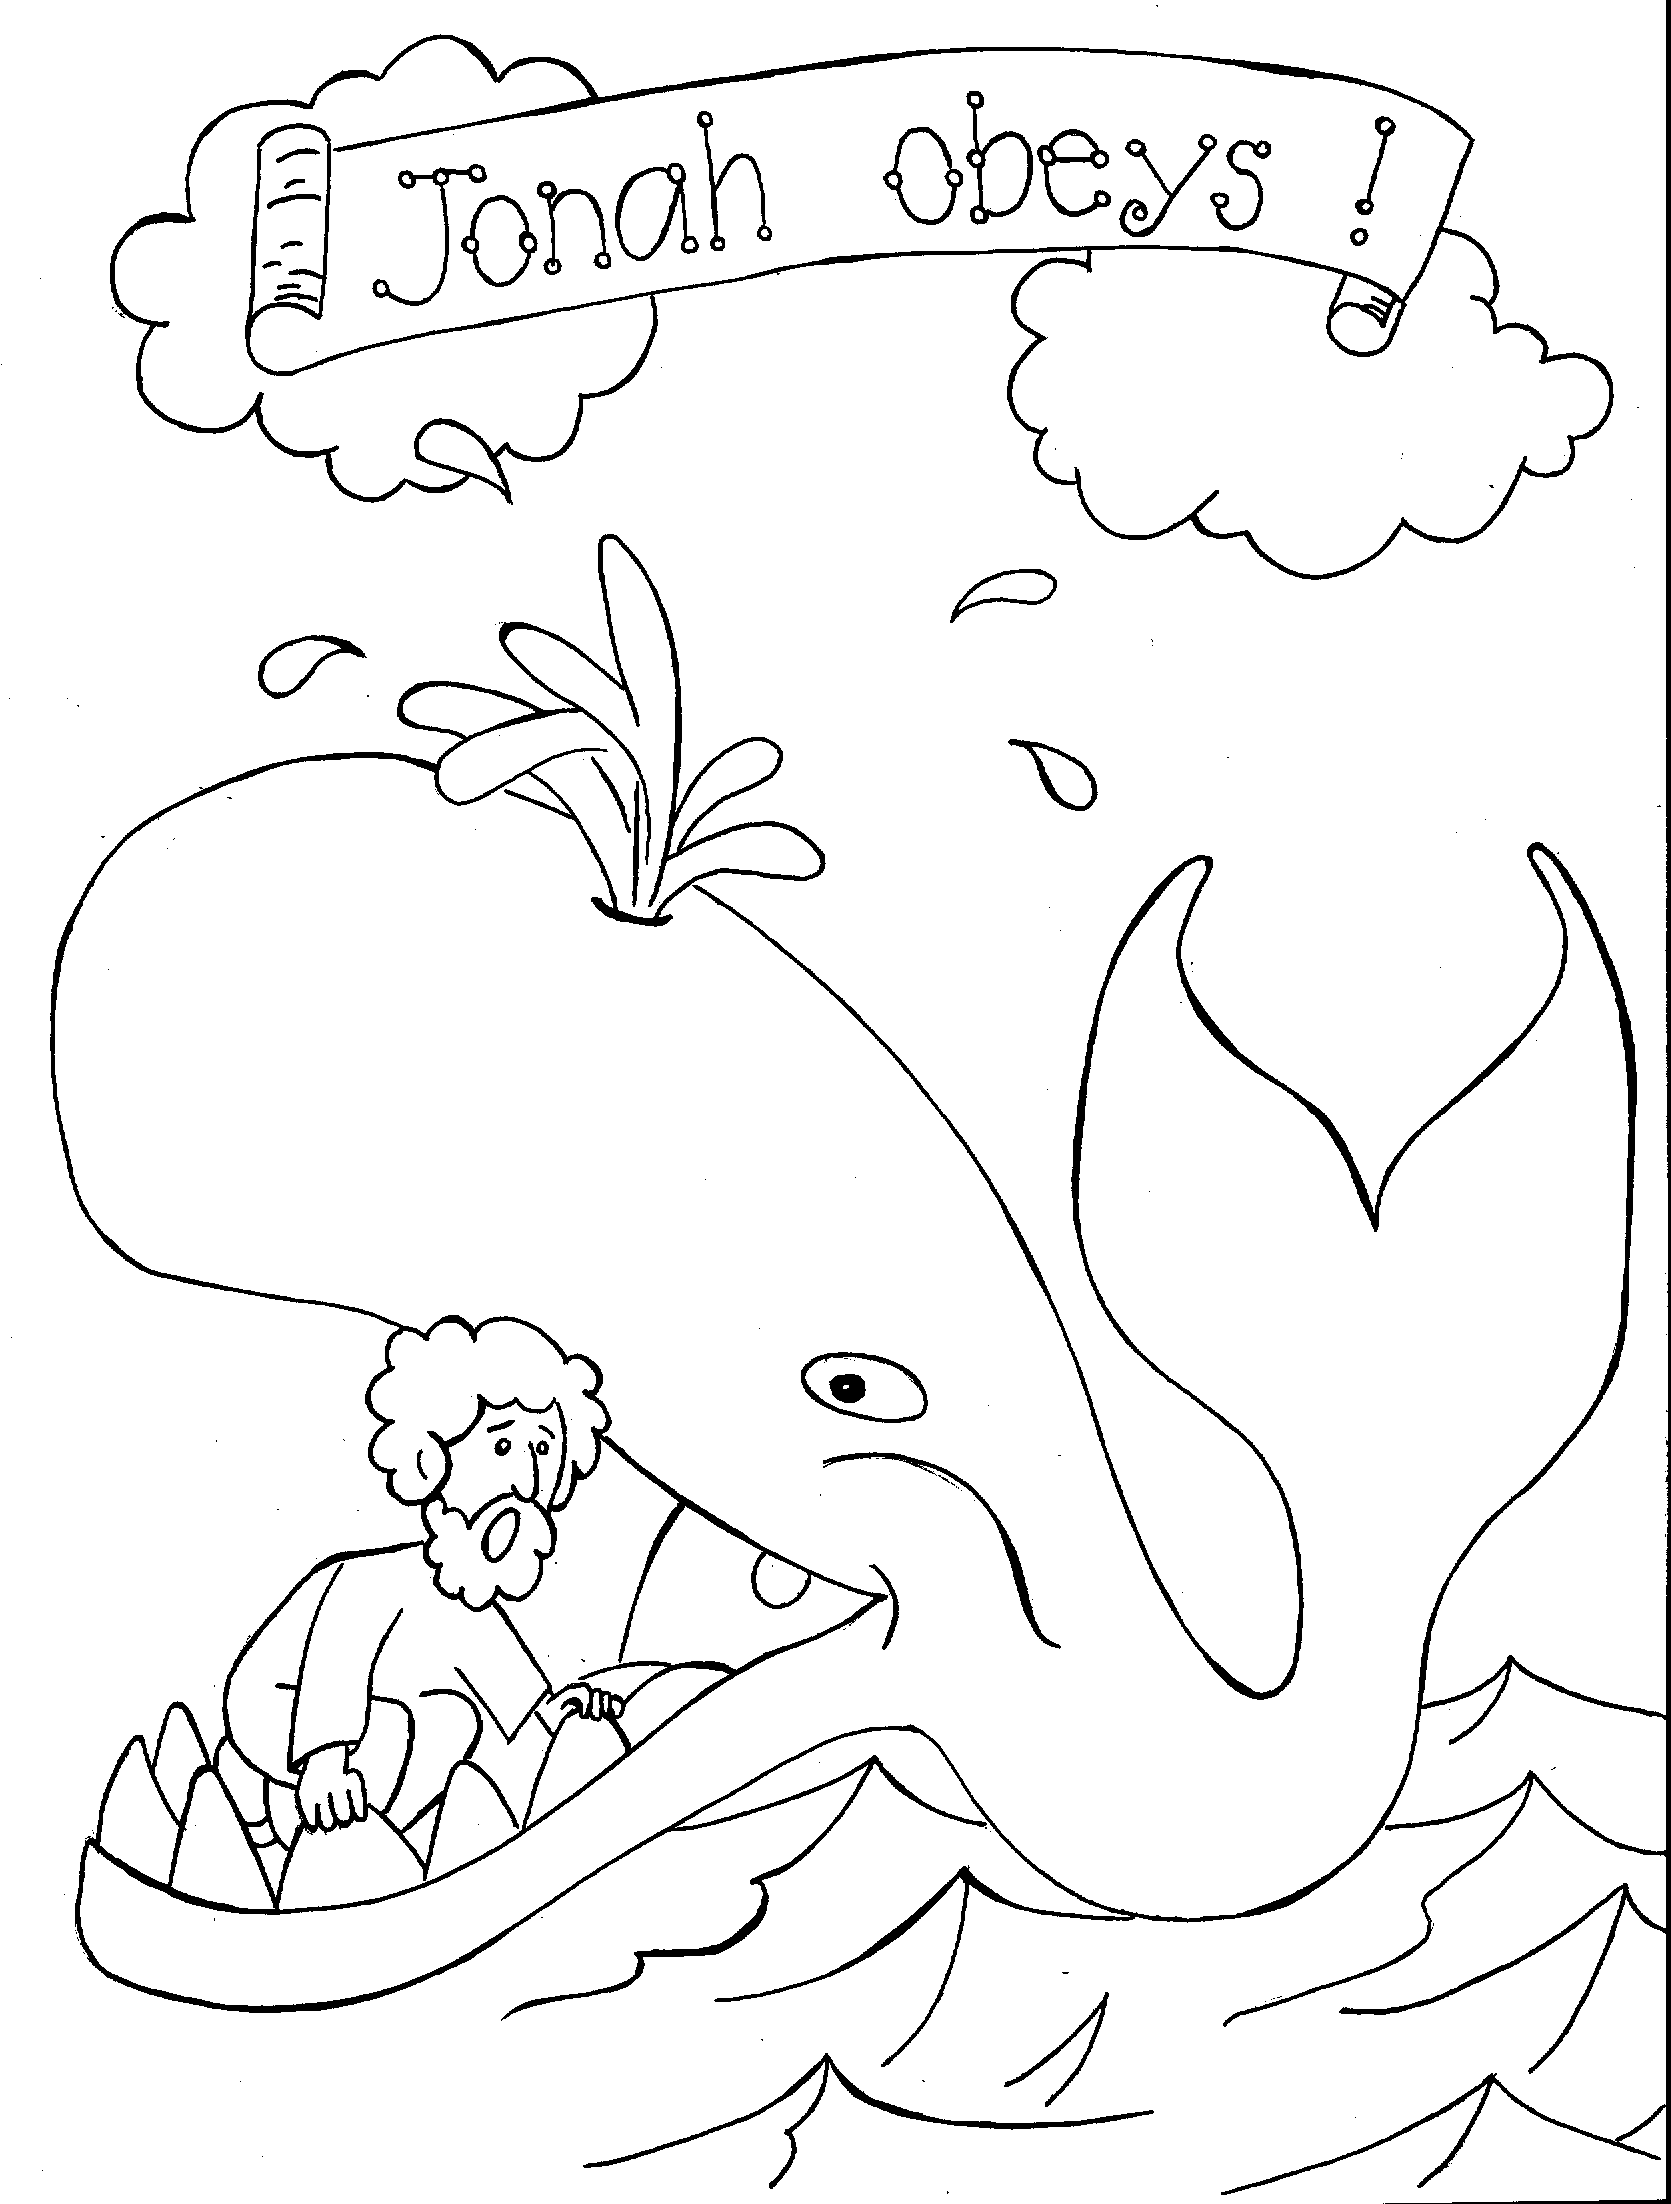 free printable whale coloring pages for kids - Jonah Whale Coloring Page